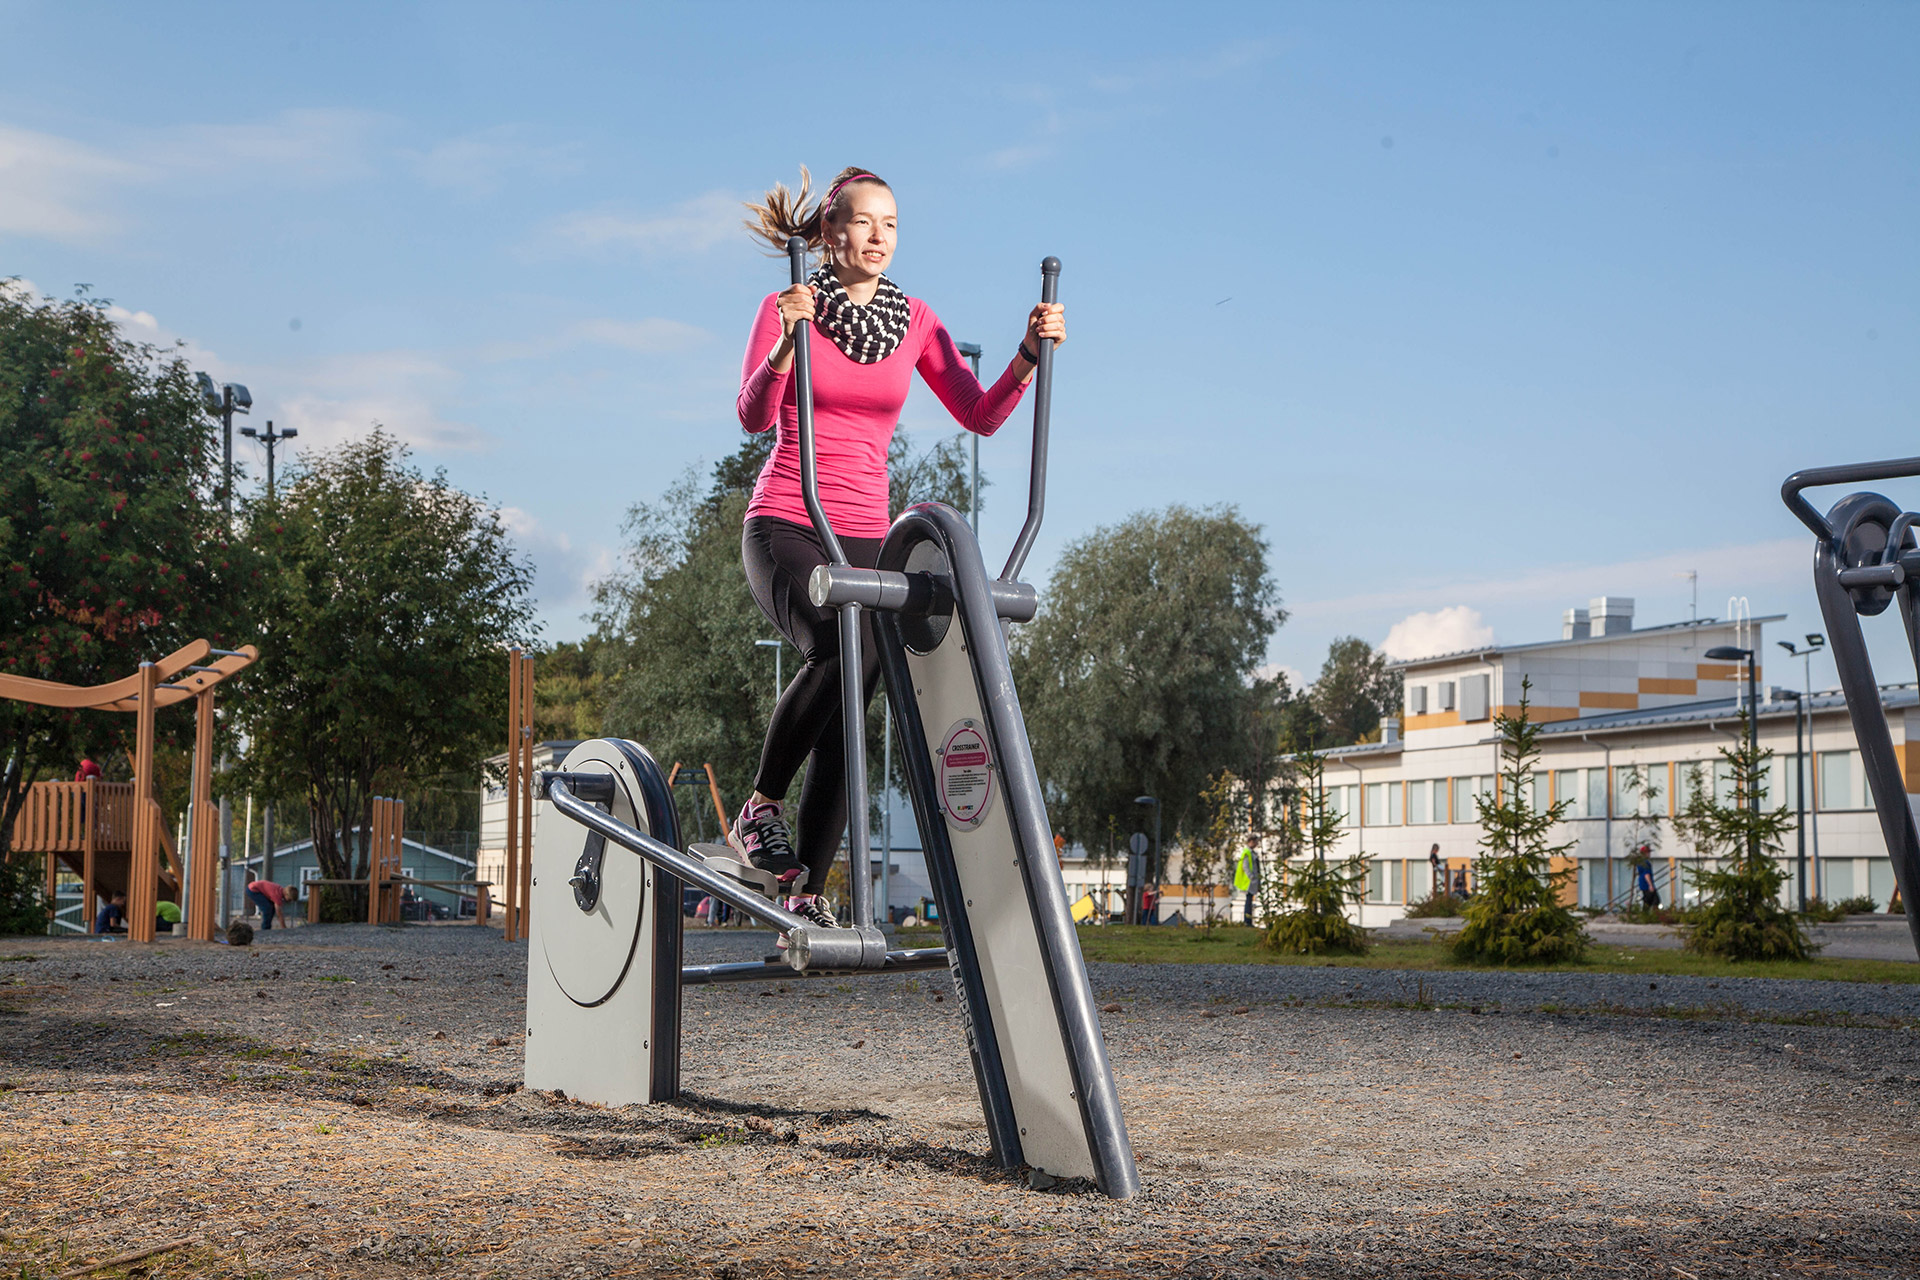 outdoor gym cross trainer being used by lady